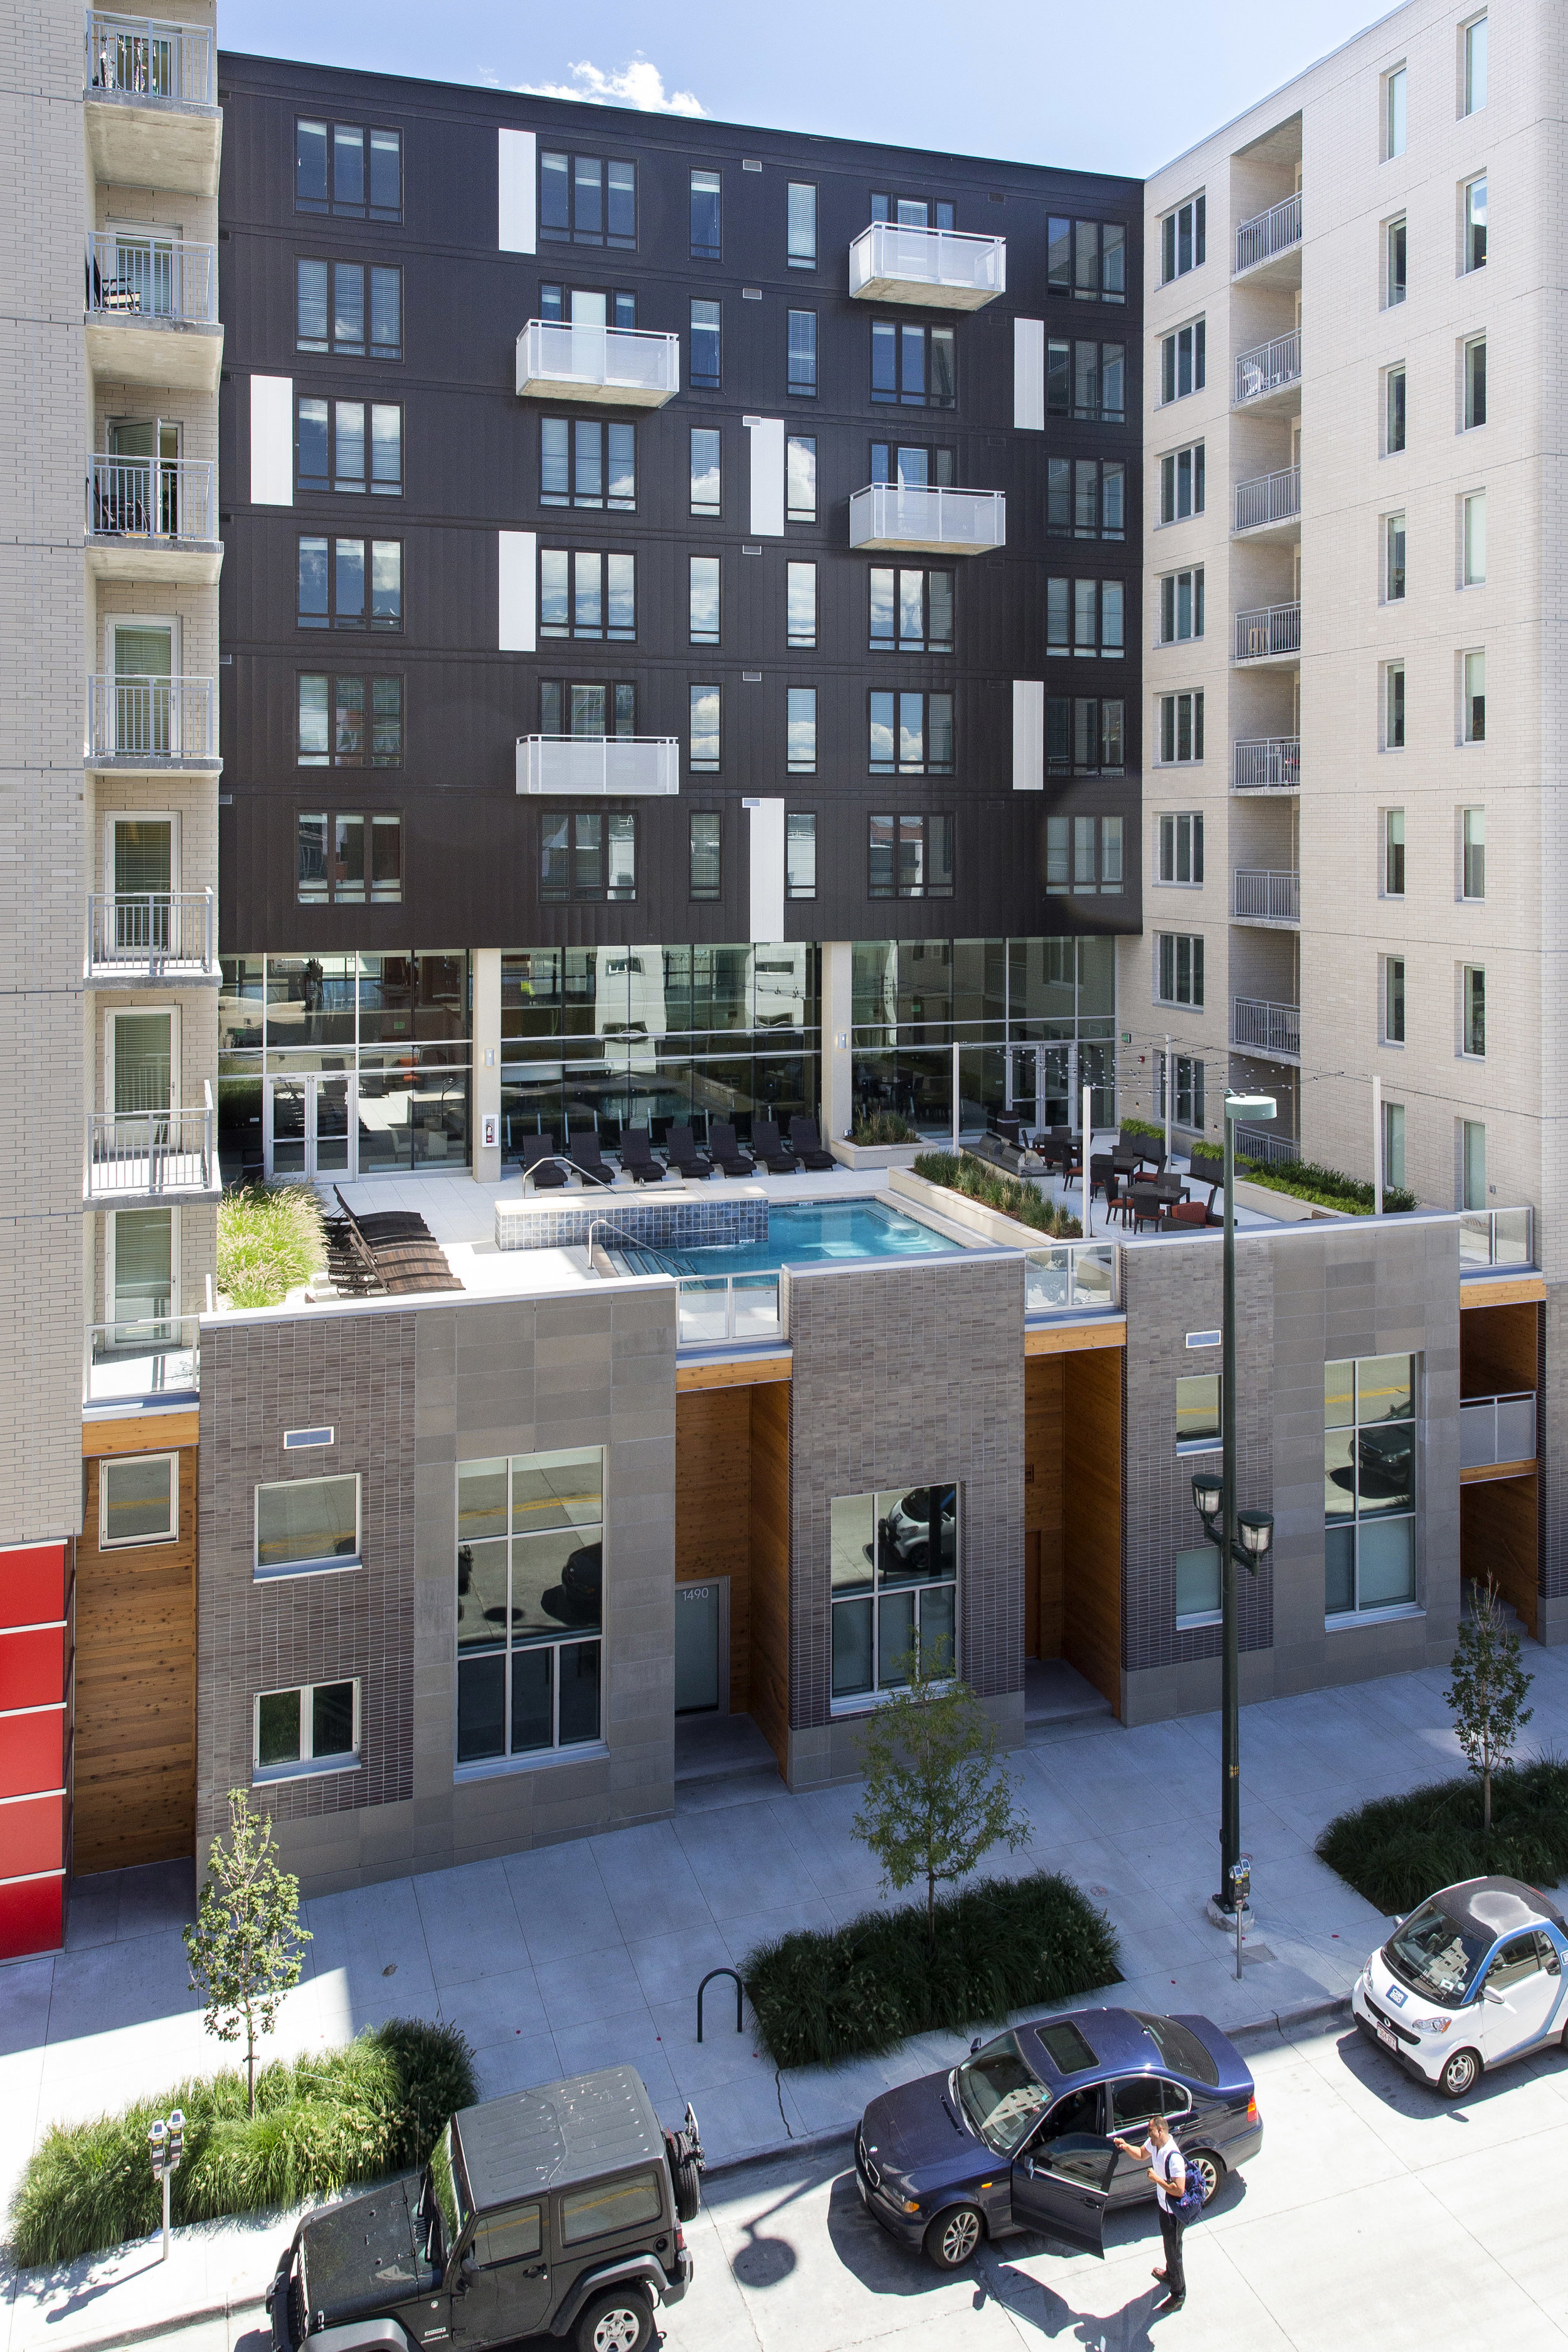 """<img src="""" studioINSITE_The_Verve_Denver""""alt=""""Urban Living, Multifamily Courtyard, Amenity Deck, Fire Pit, Grill Area, Shade Structure, Outdoor Garden, Landscape Architecture, Luxury Living, the Douglas, Denver, CO, Colorado Courtyards, Amenity Spaces, Great Courtyard Designs"""" title=""""The Verve""""/>"""